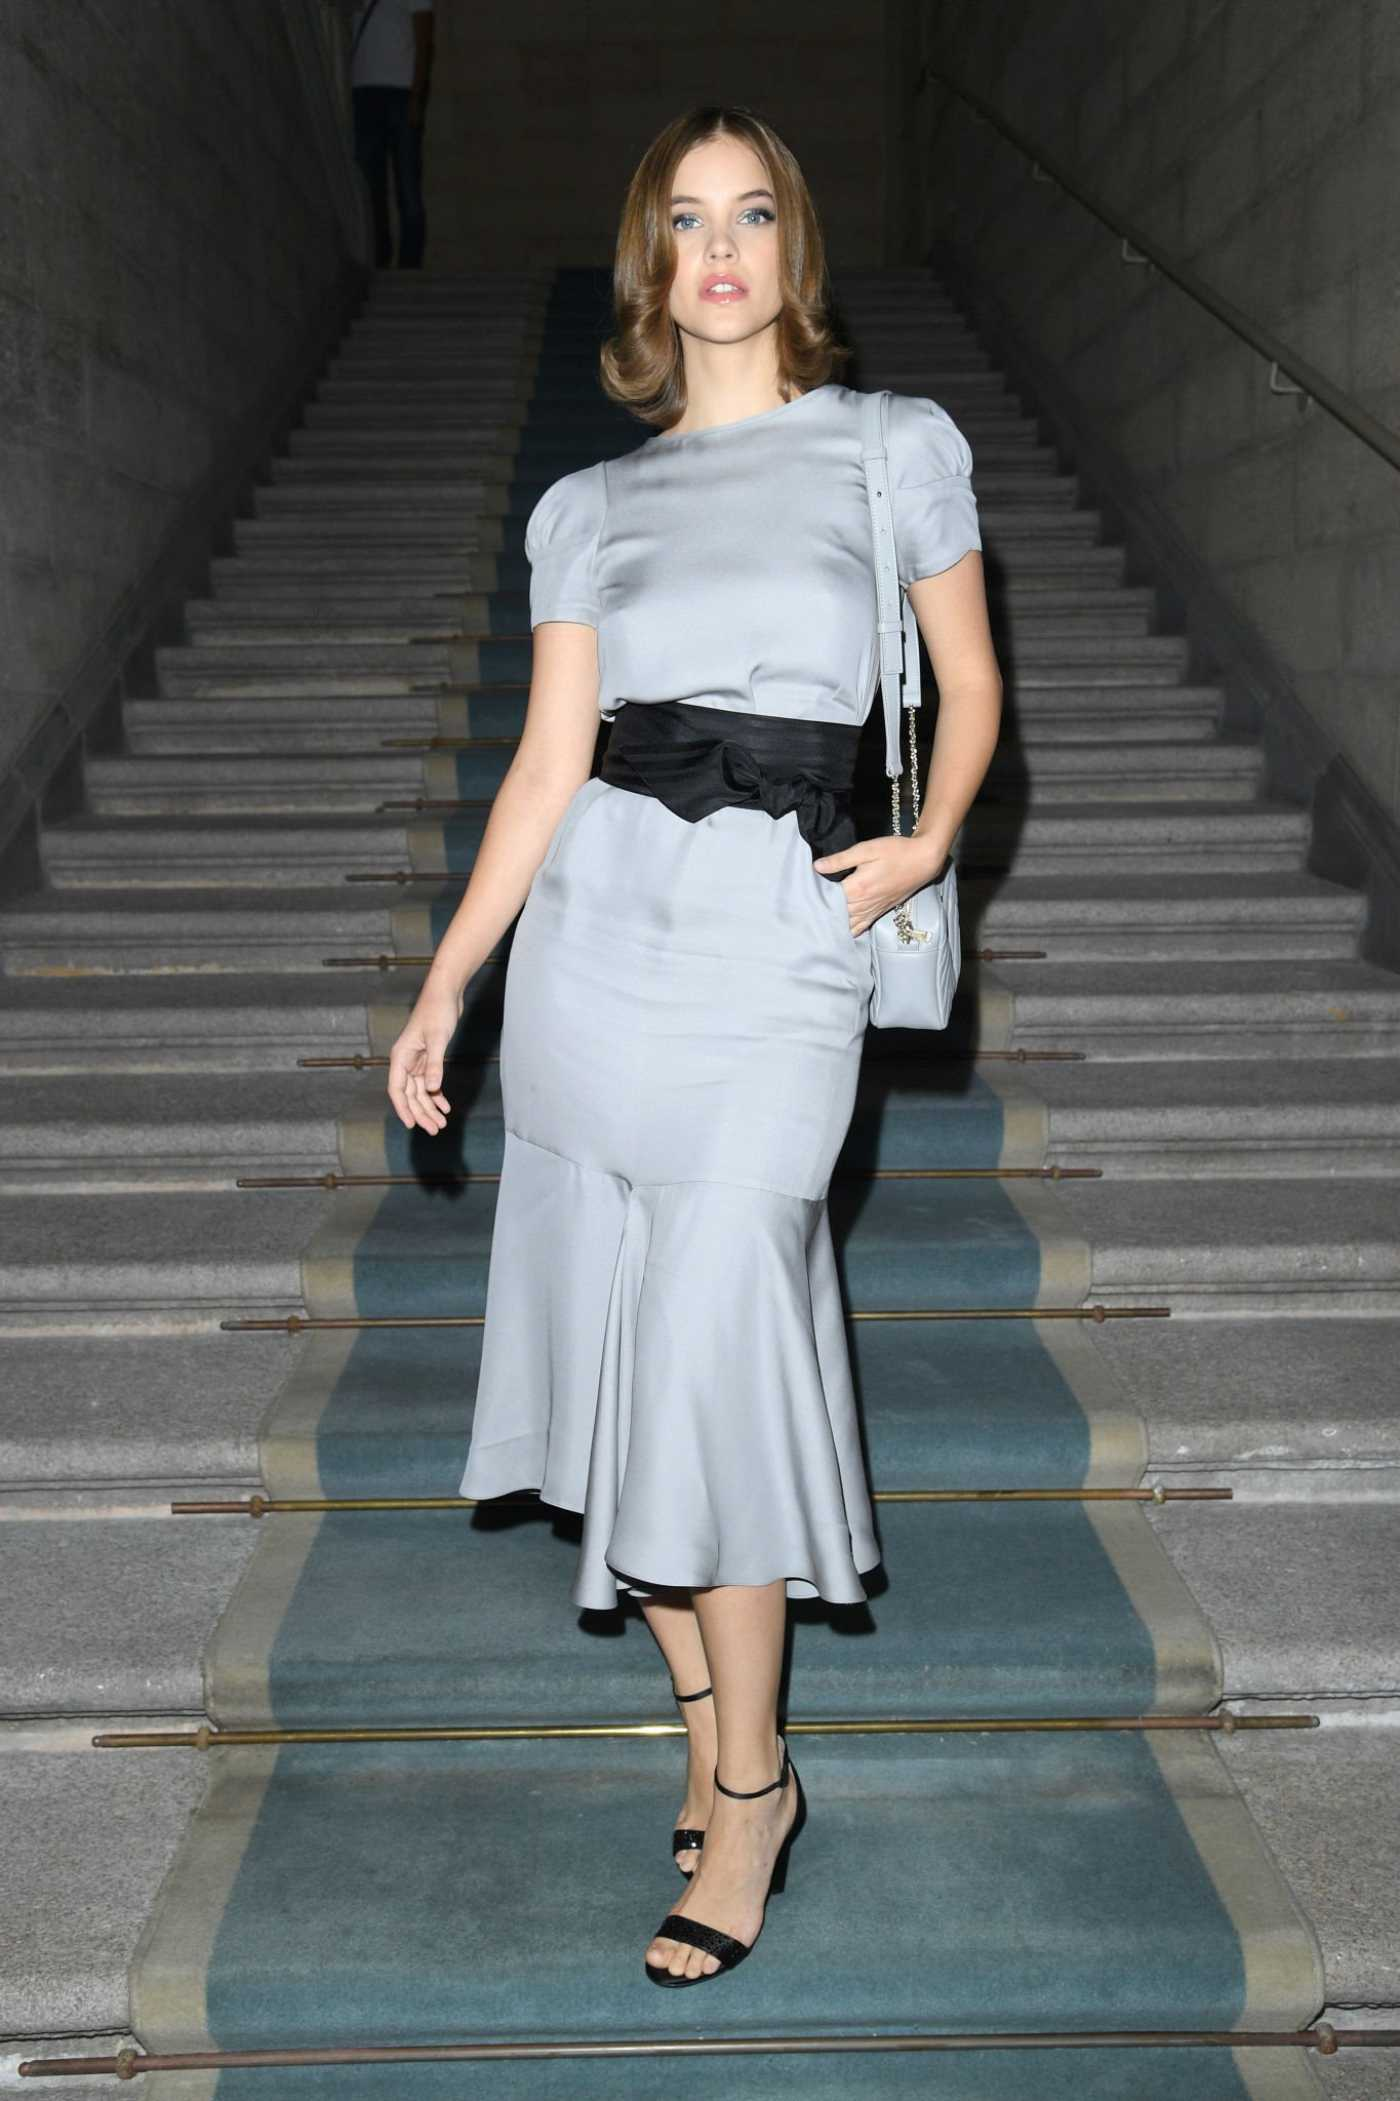 Barbara Palvin Attends Giorgio Armani Fashion Show During 2019 Milan Fashion Week in Milan 09/21/2019